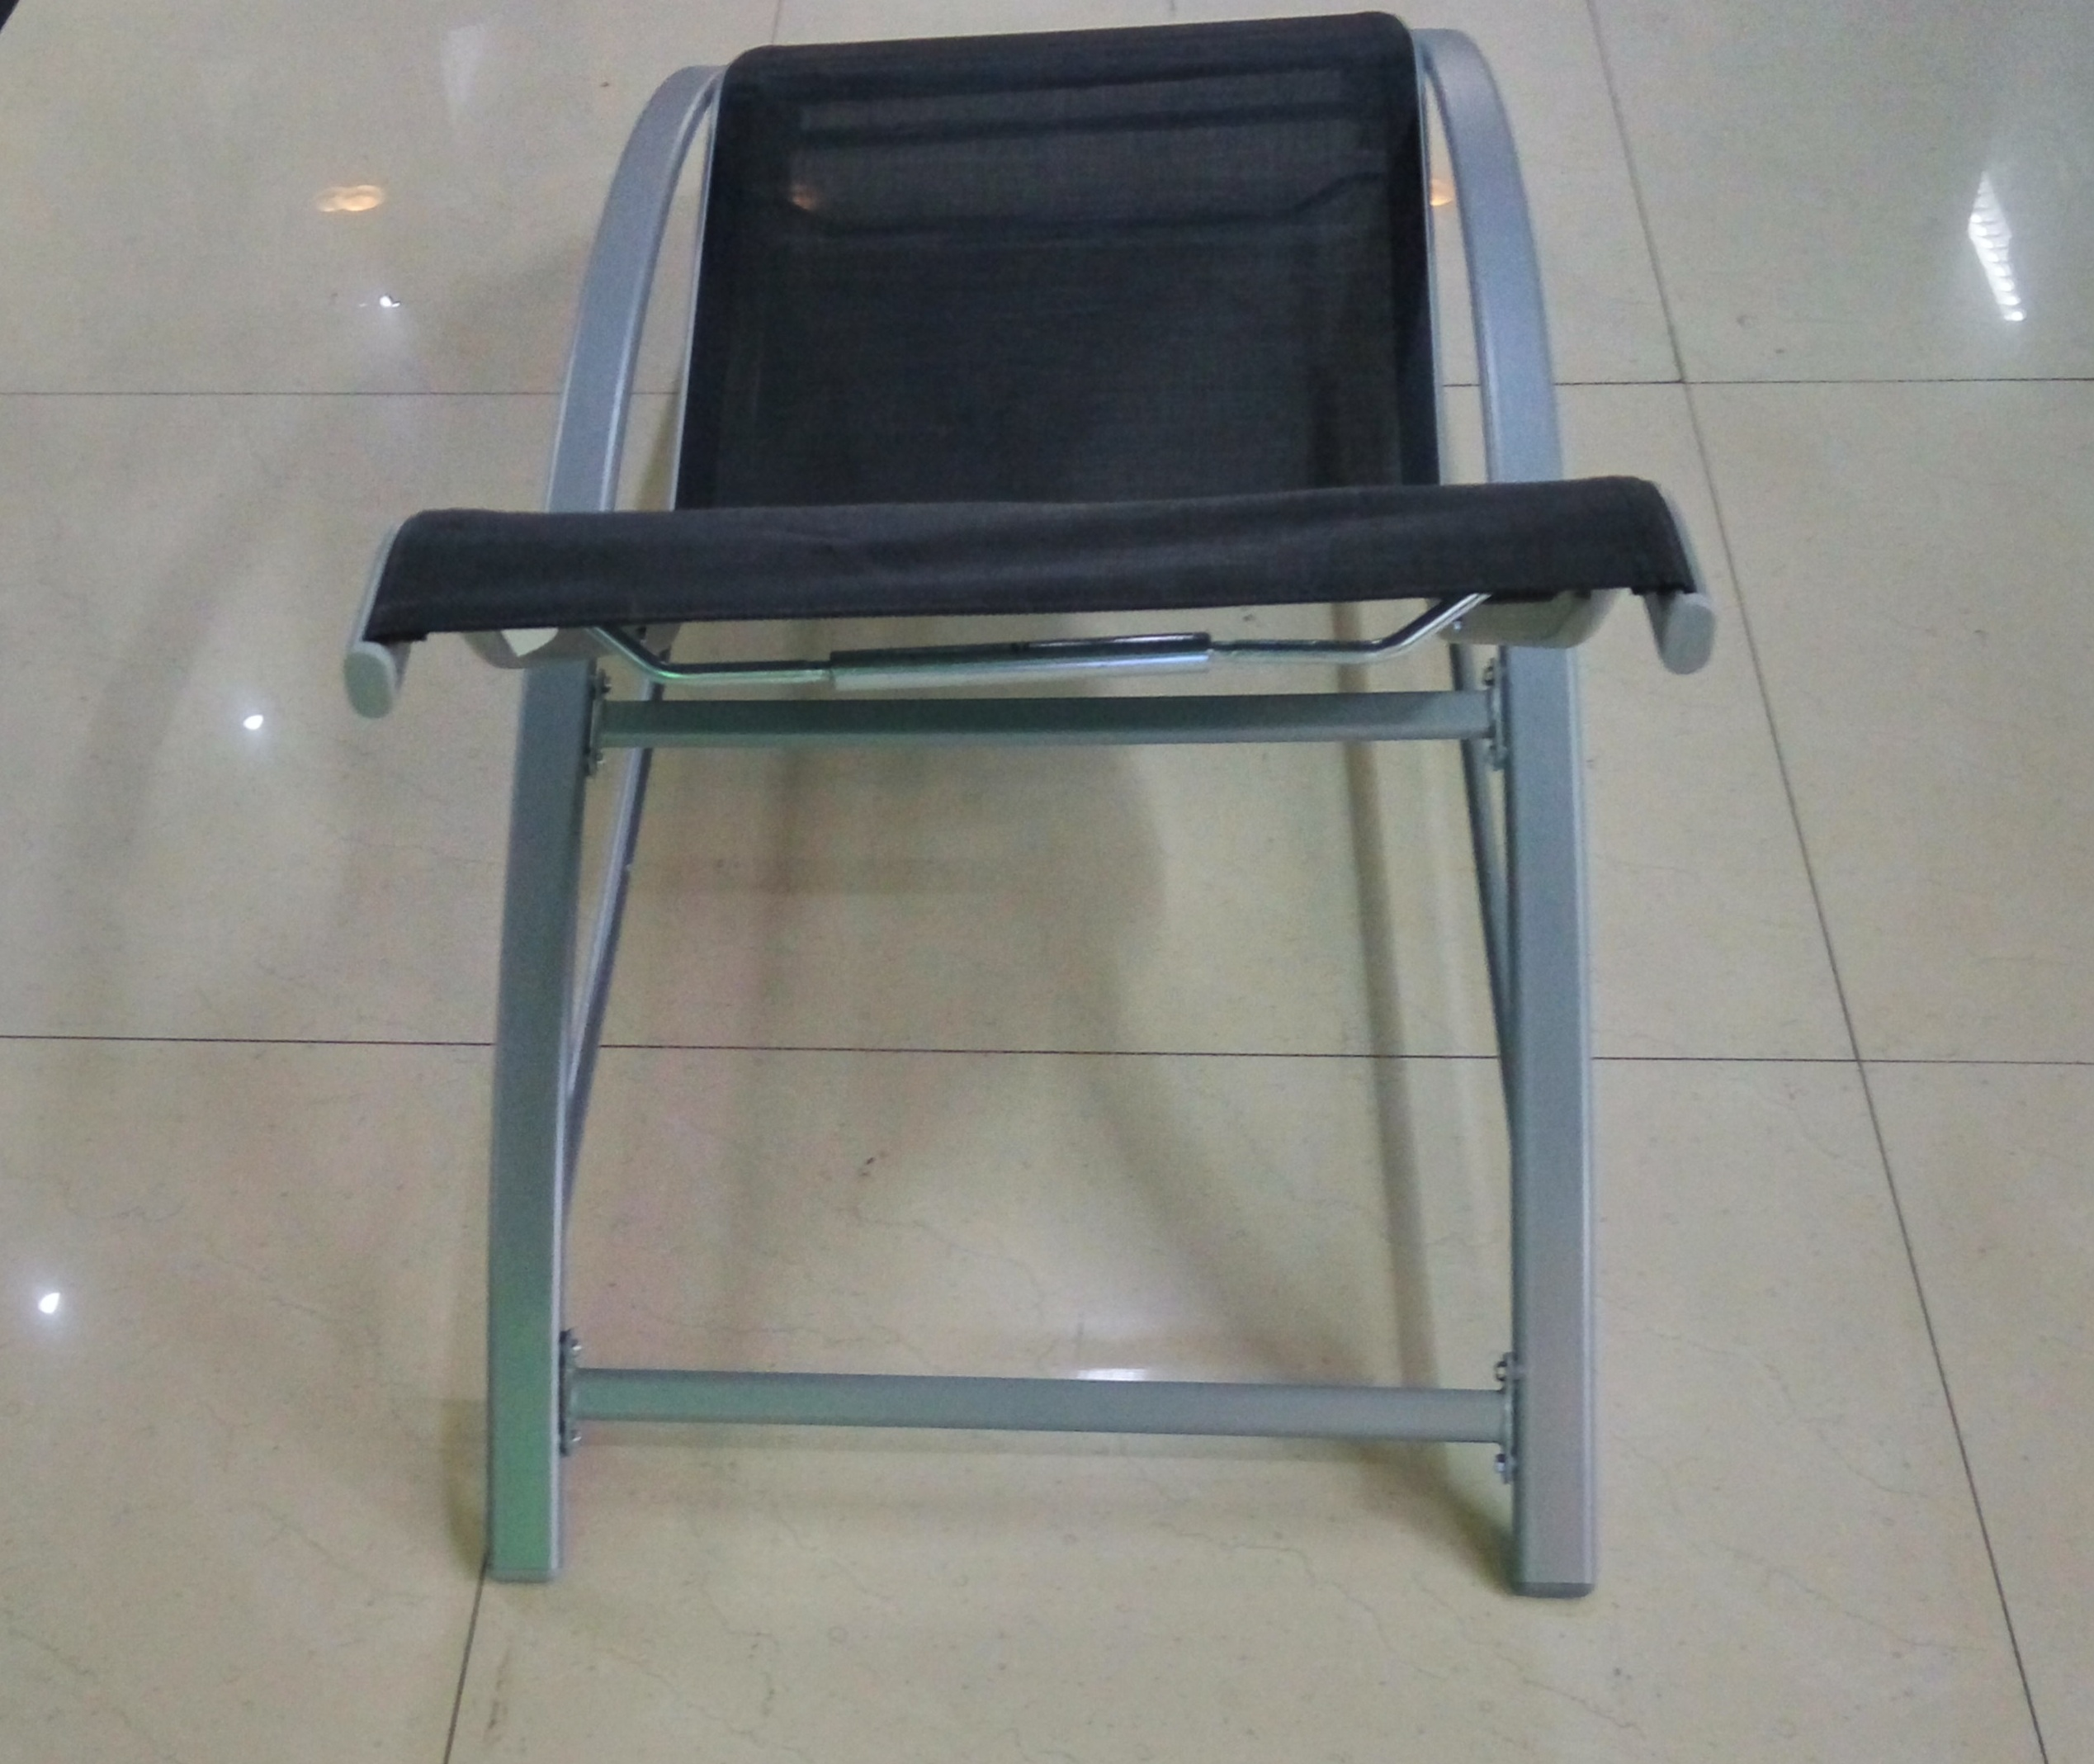 lounger back view